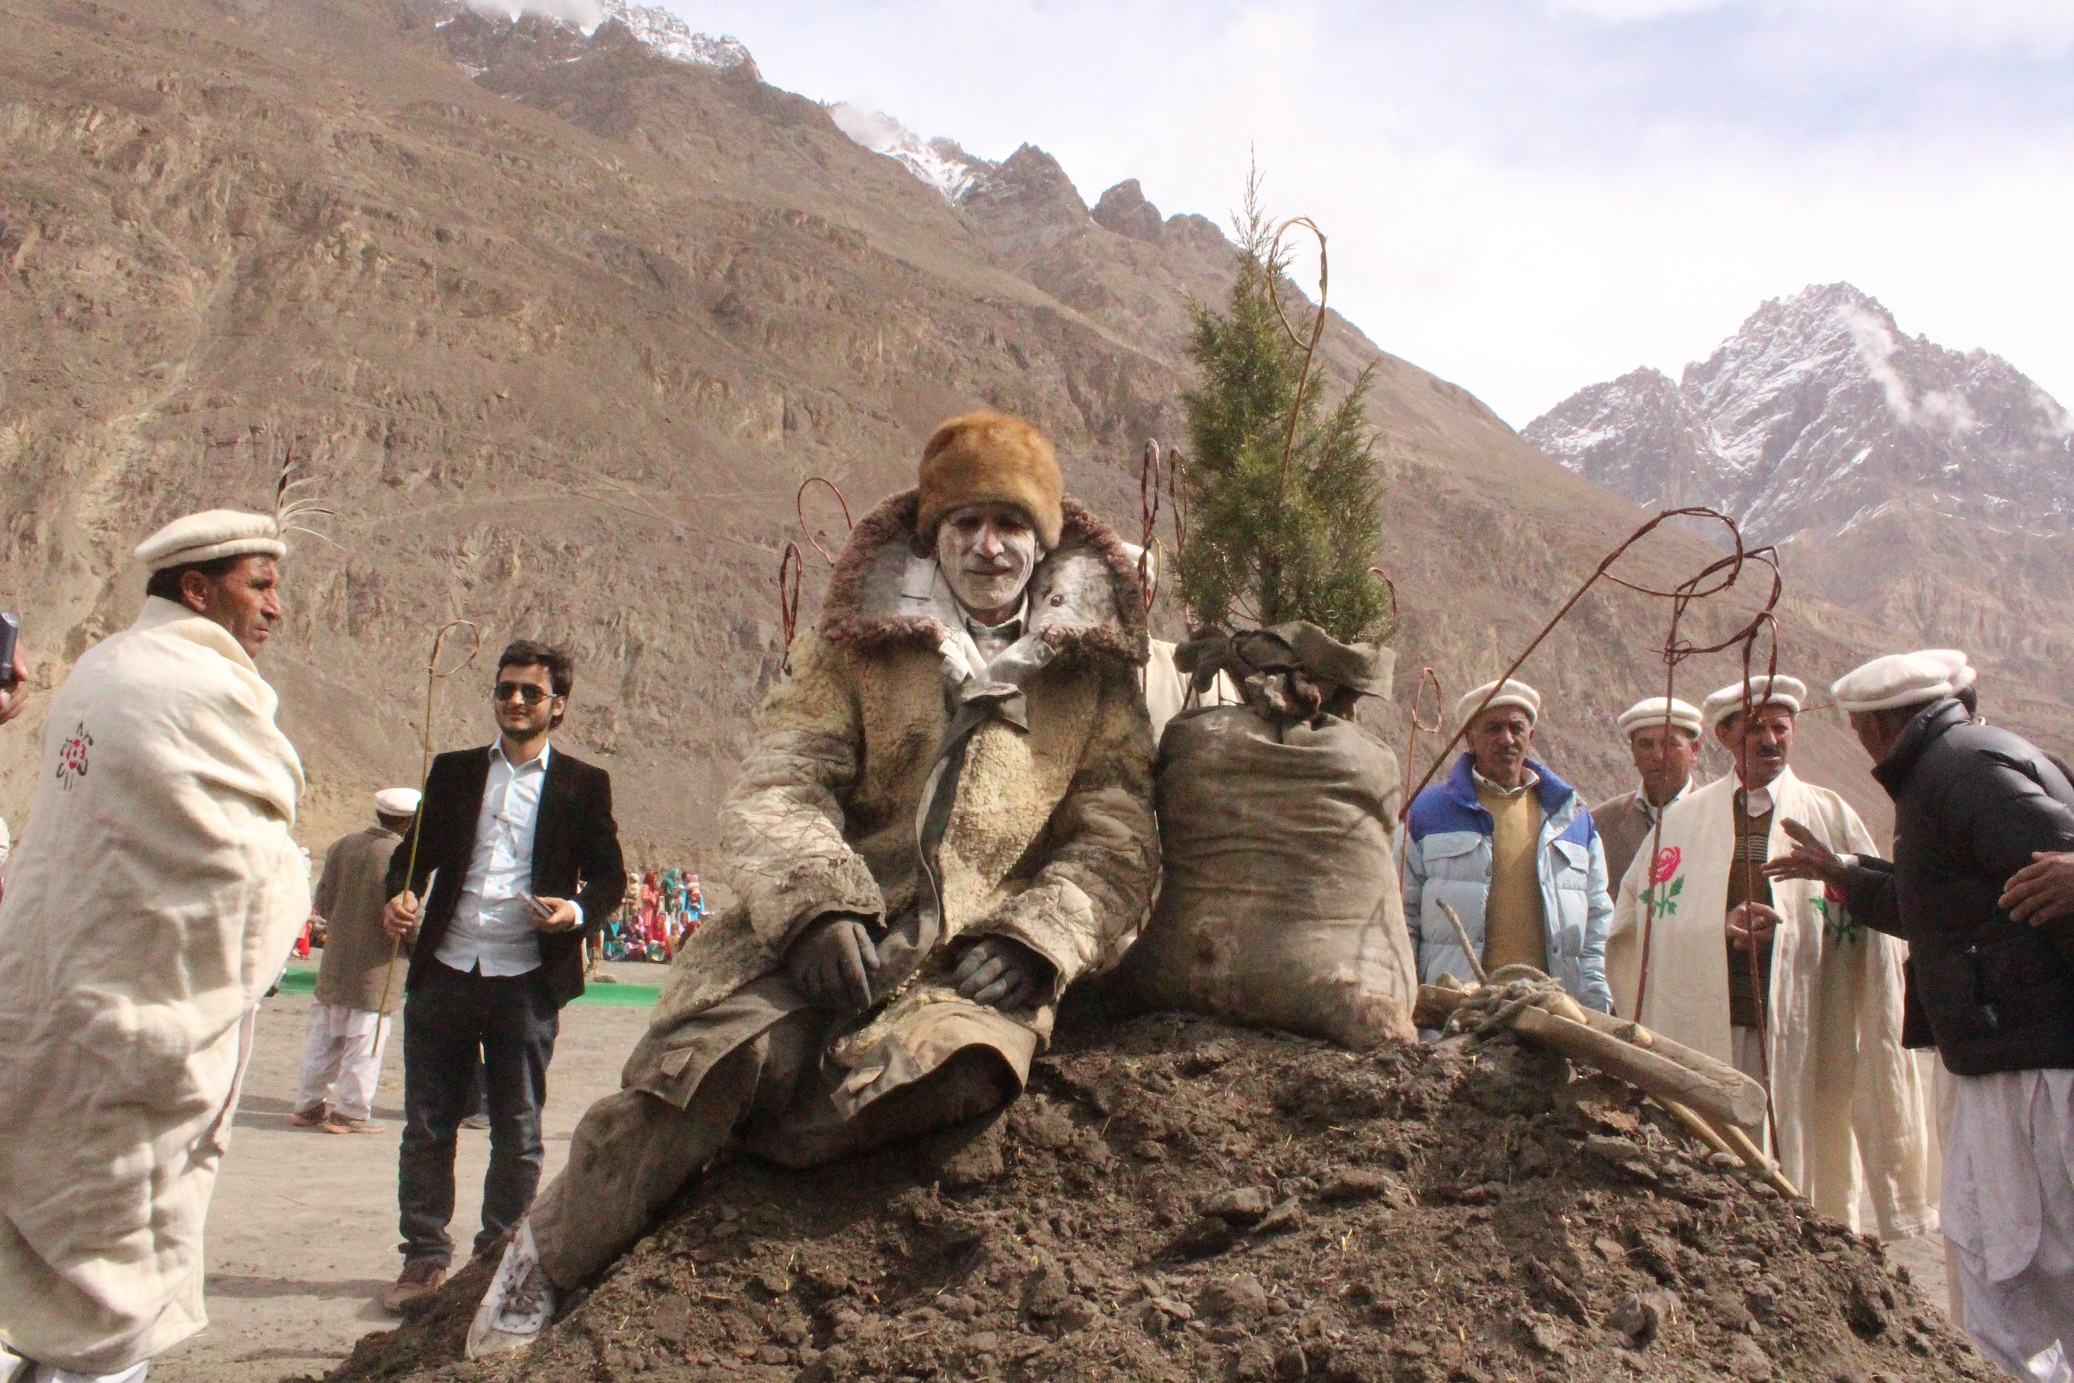 Taγ̌m Festival Celebrated in Shimshal Valley, Gojal